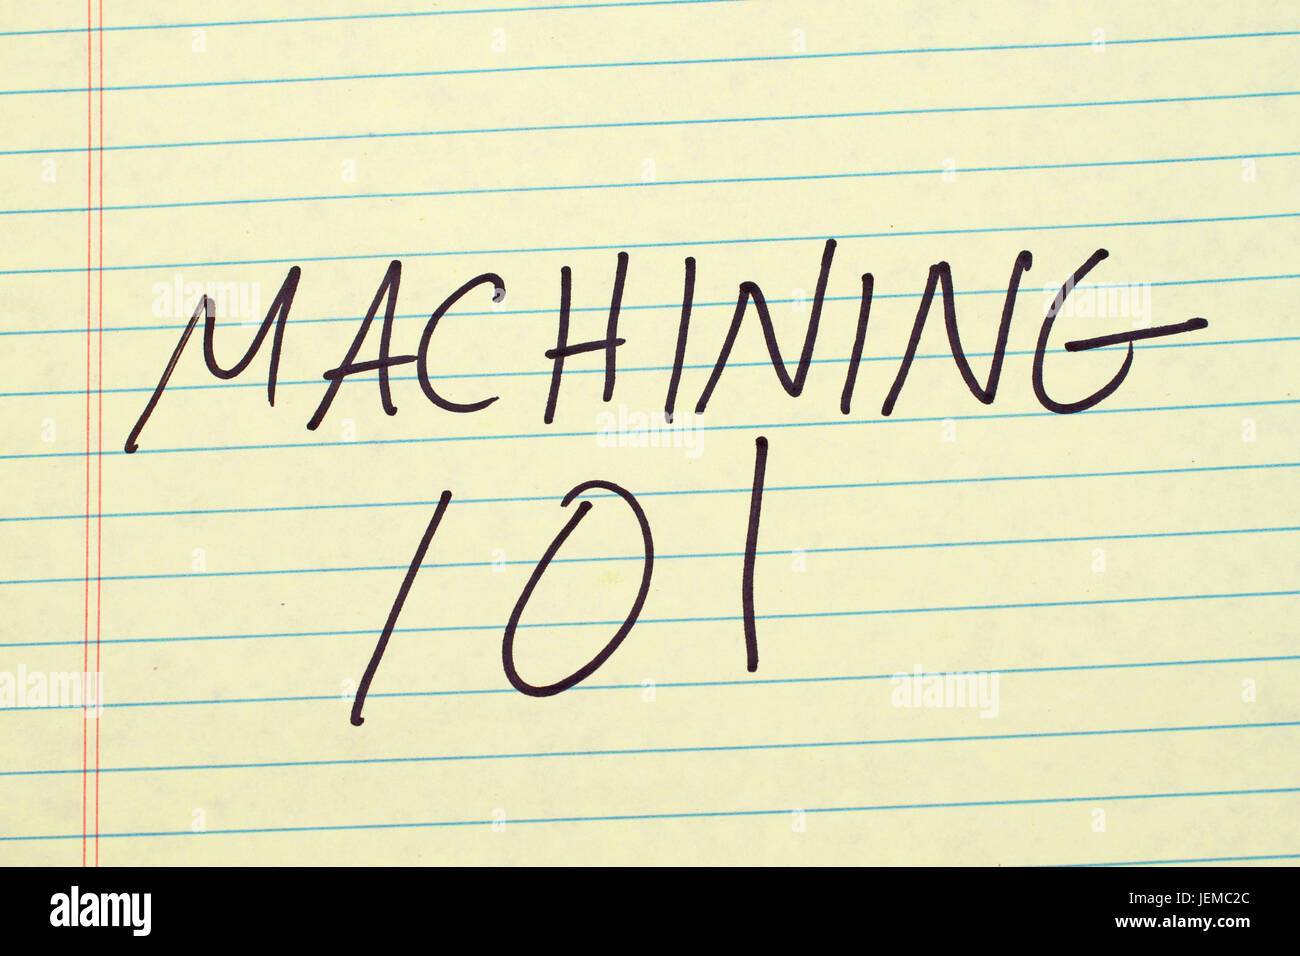 The words 'Machining 101' on a yellow legal pad - Stock Image